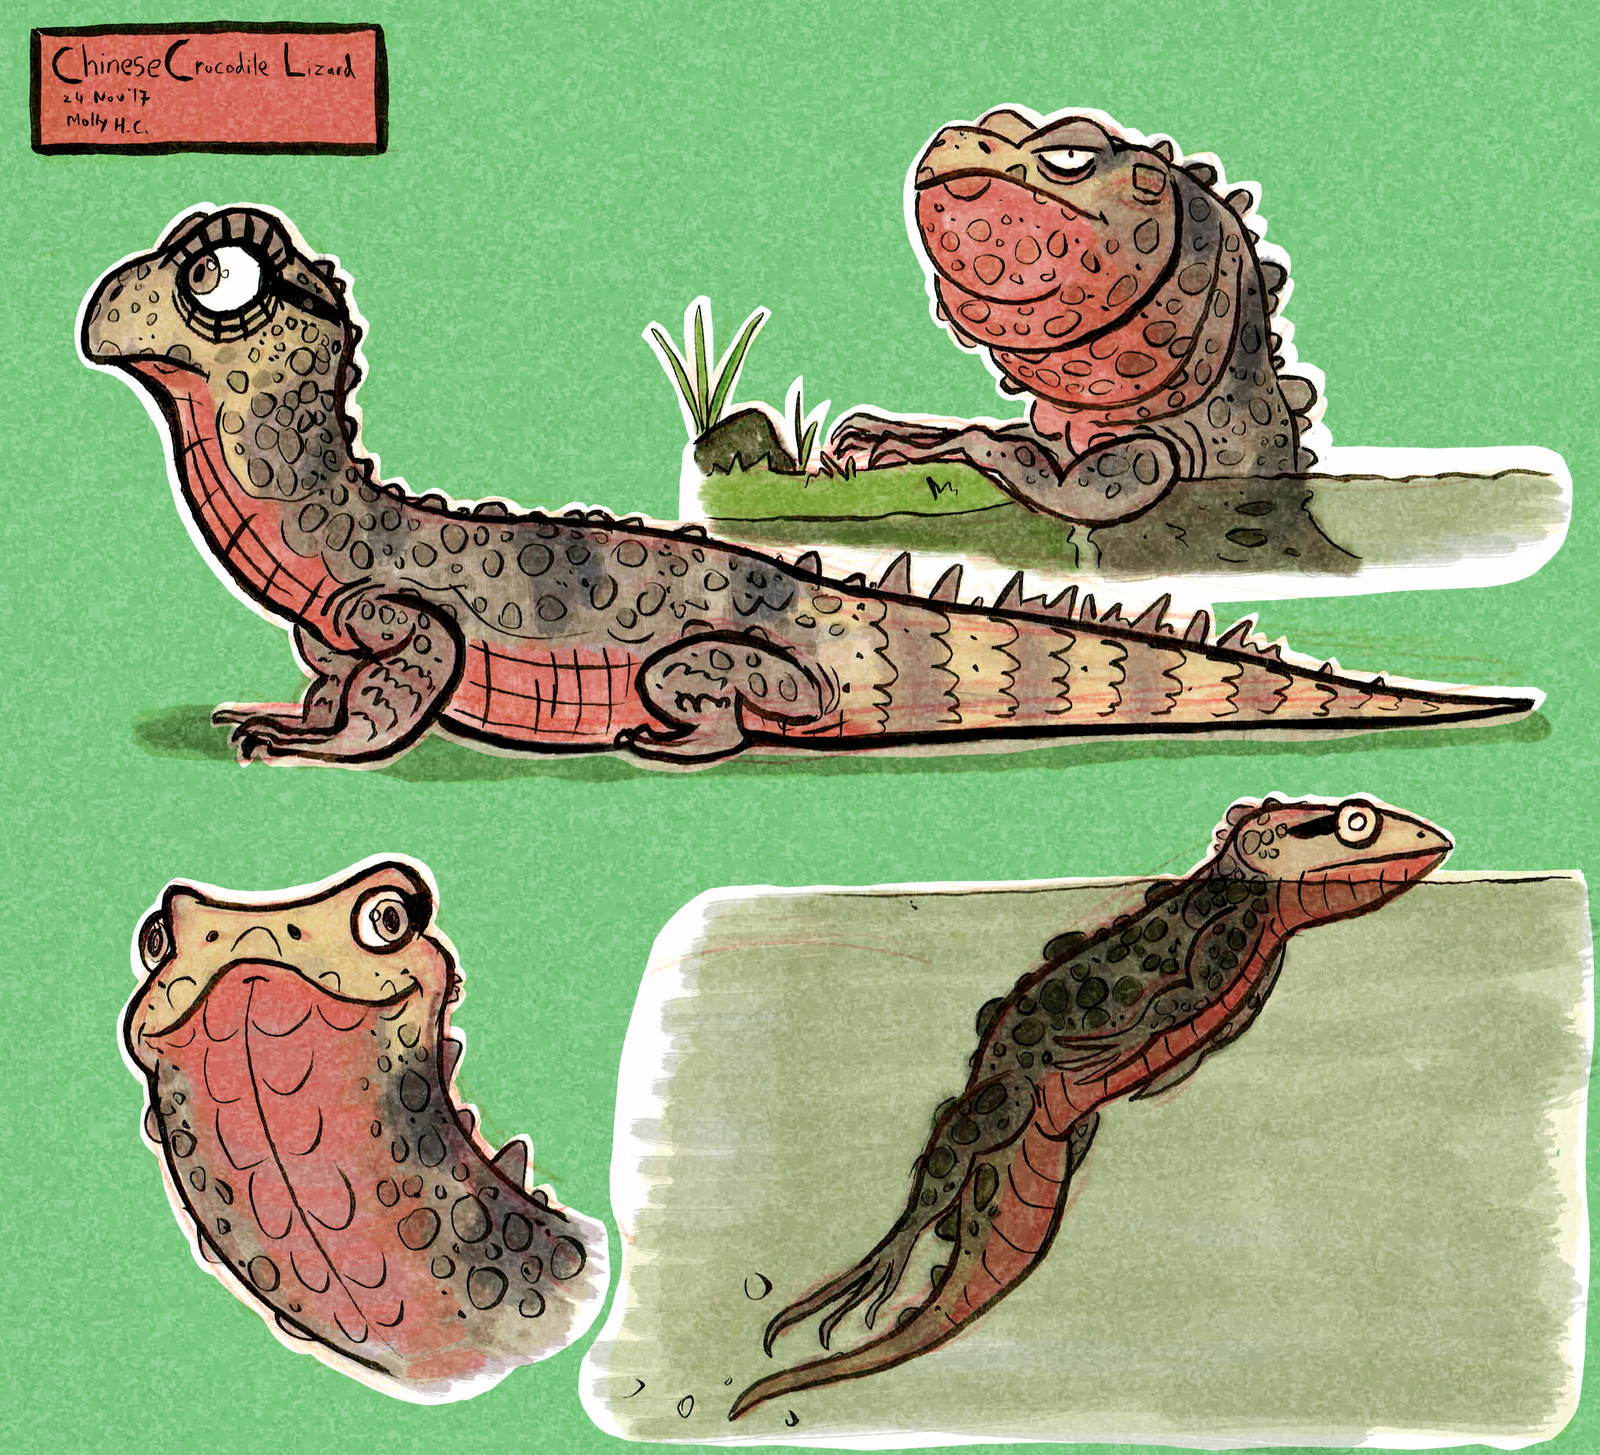 Chinese Crocodile Lizard Character Concepts